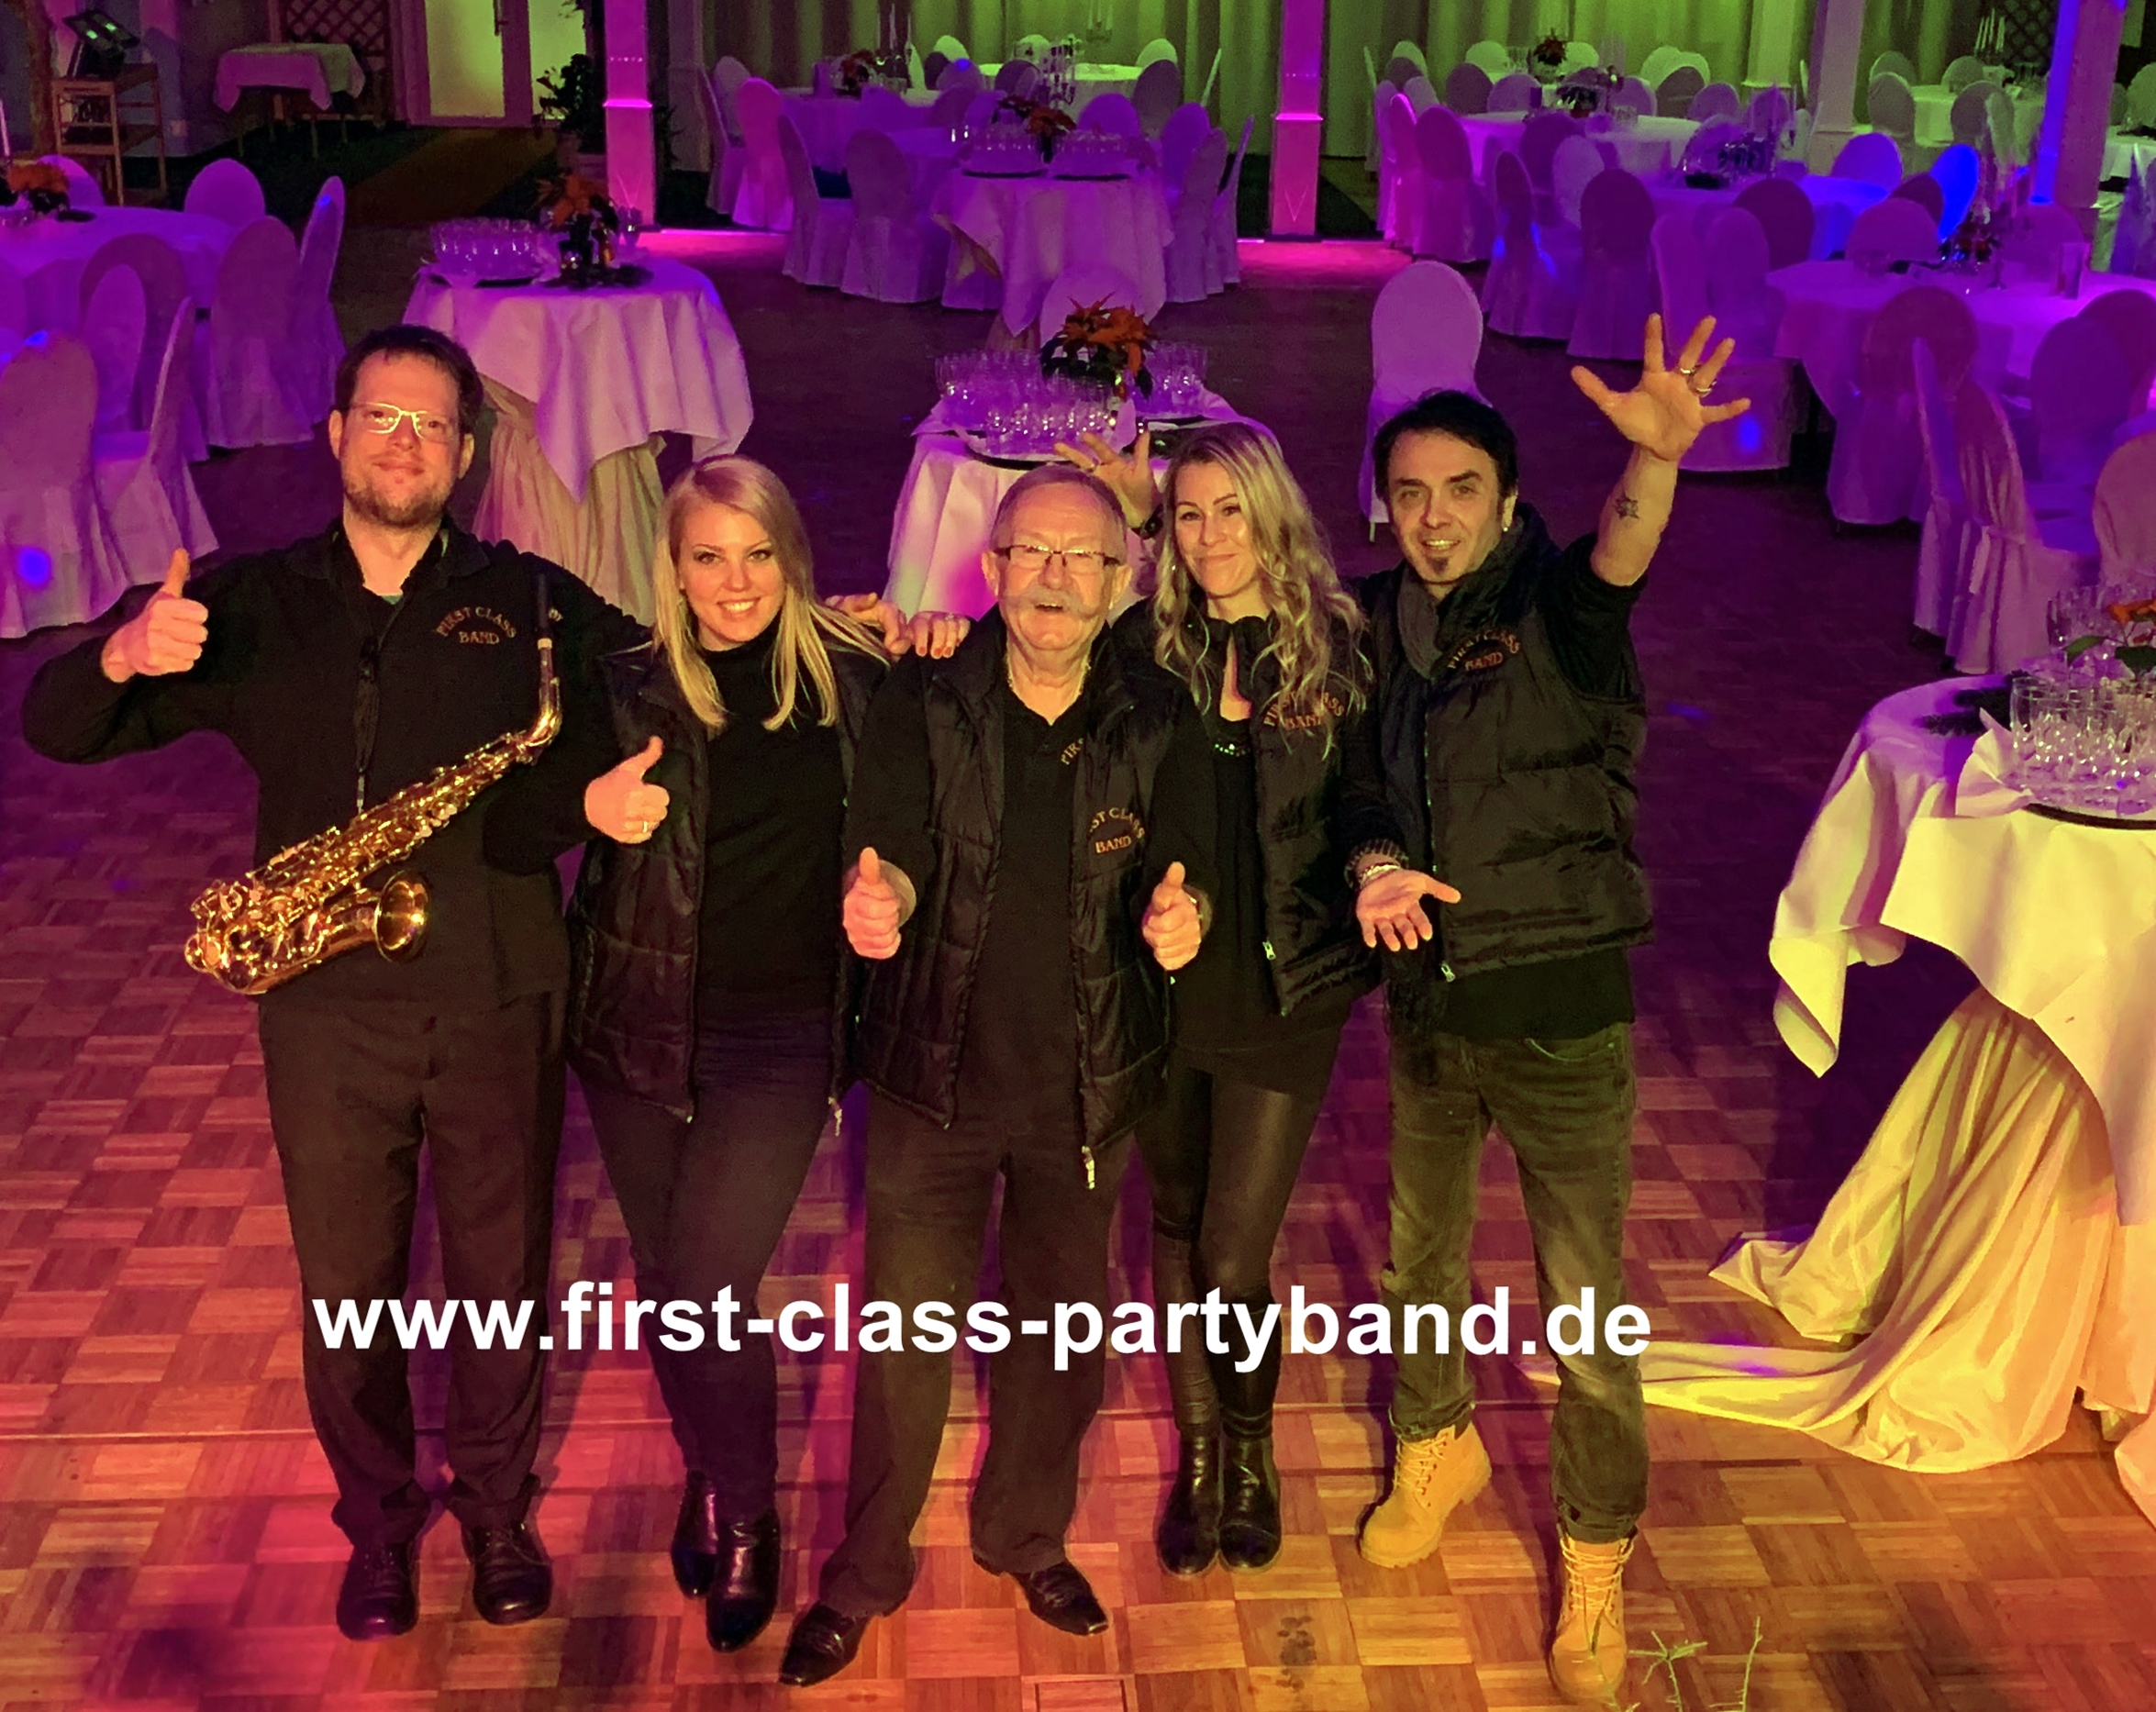 First Class Partyband Music For All Generations Coverband Hochzeitsband Partyband Hochzeitsband In Deutschland